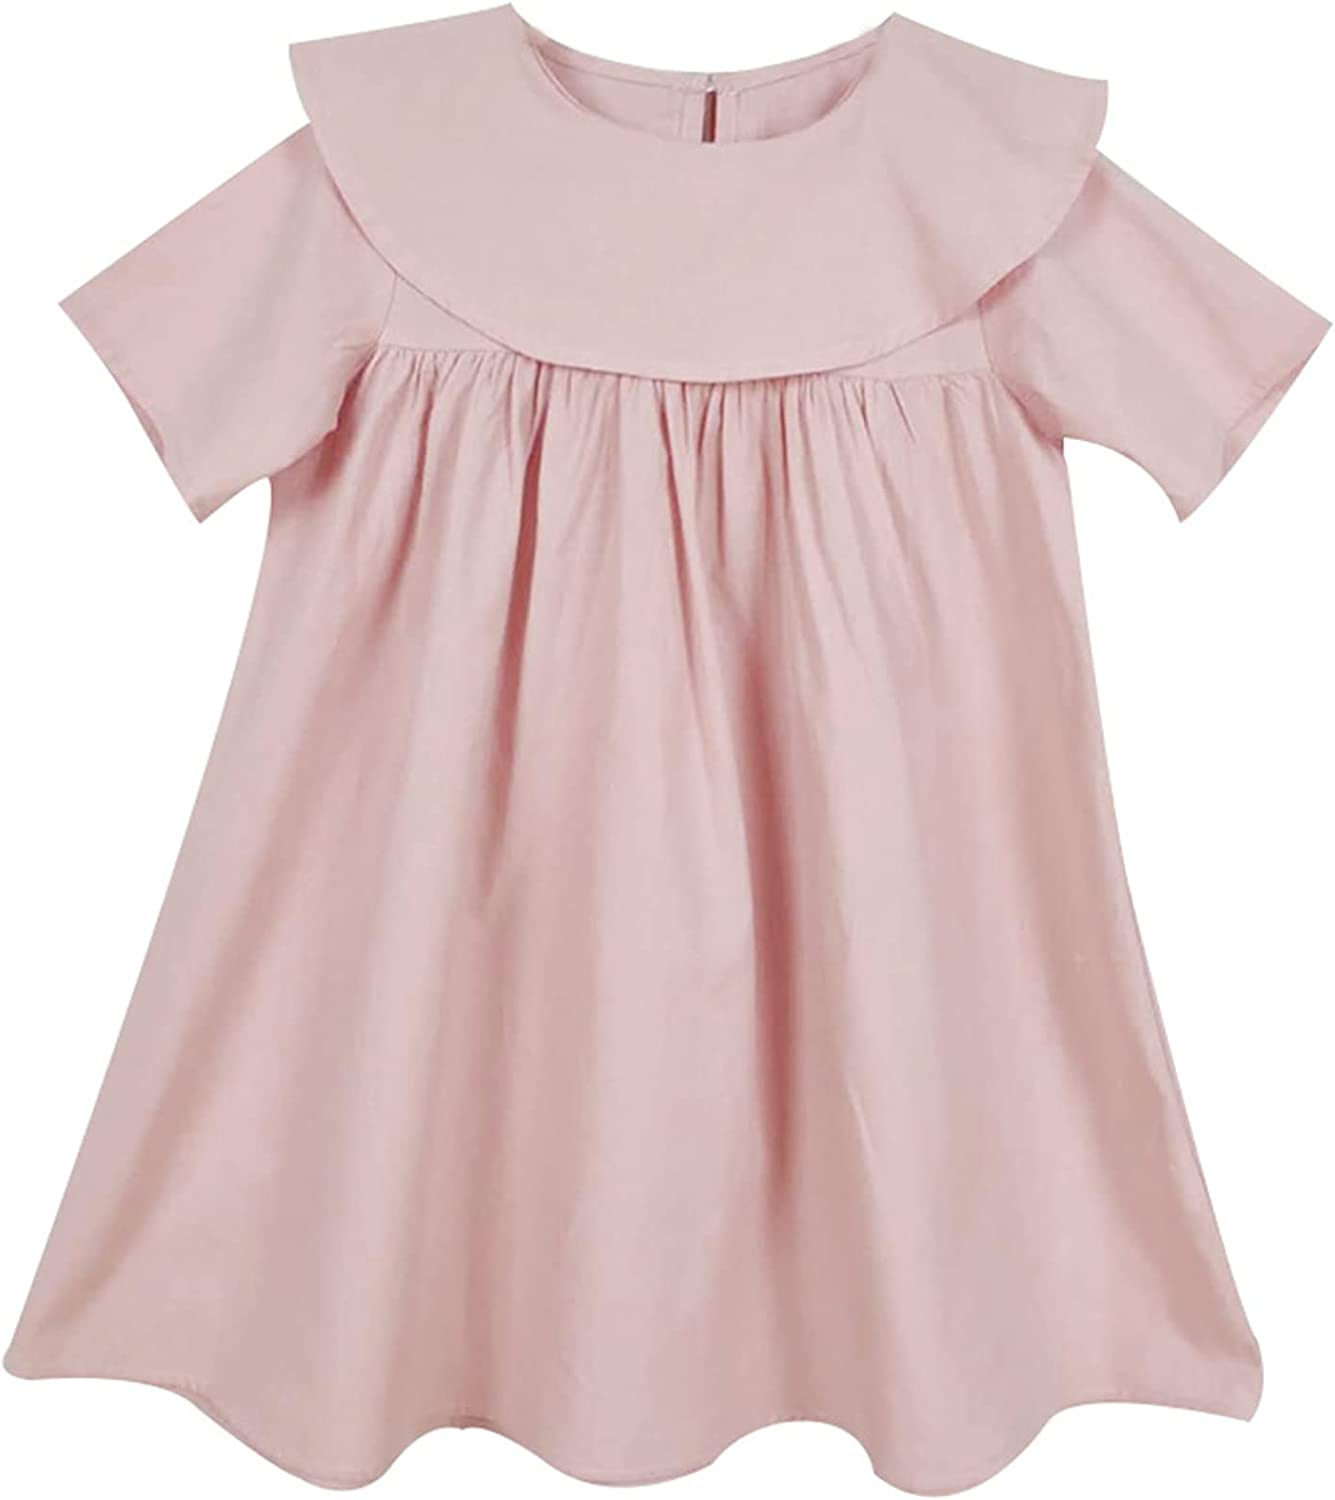 Generic2 Kids Princess Dress Summer Solid Color Breathable Short Sleeve Dresses Girls Loose Casual Round Neck Ruffle Dress